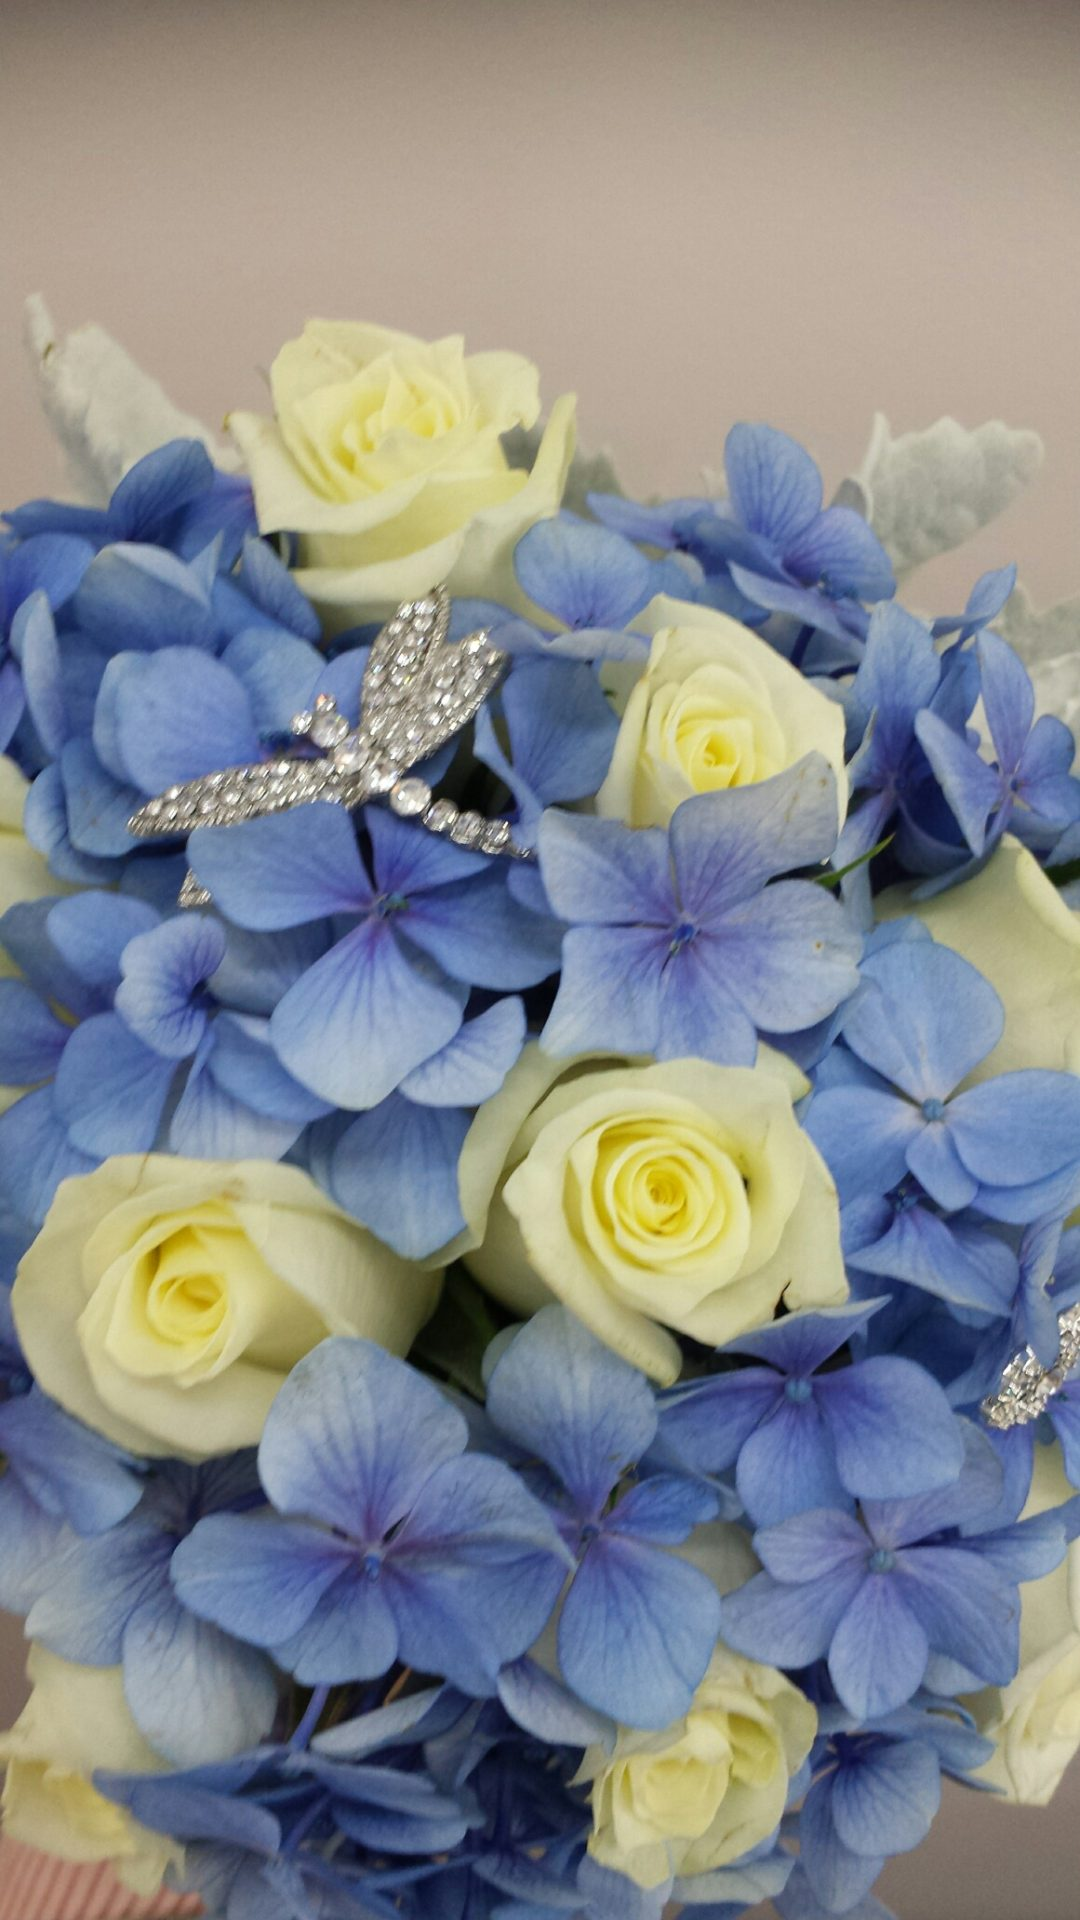 Blue hydrangea and white roses